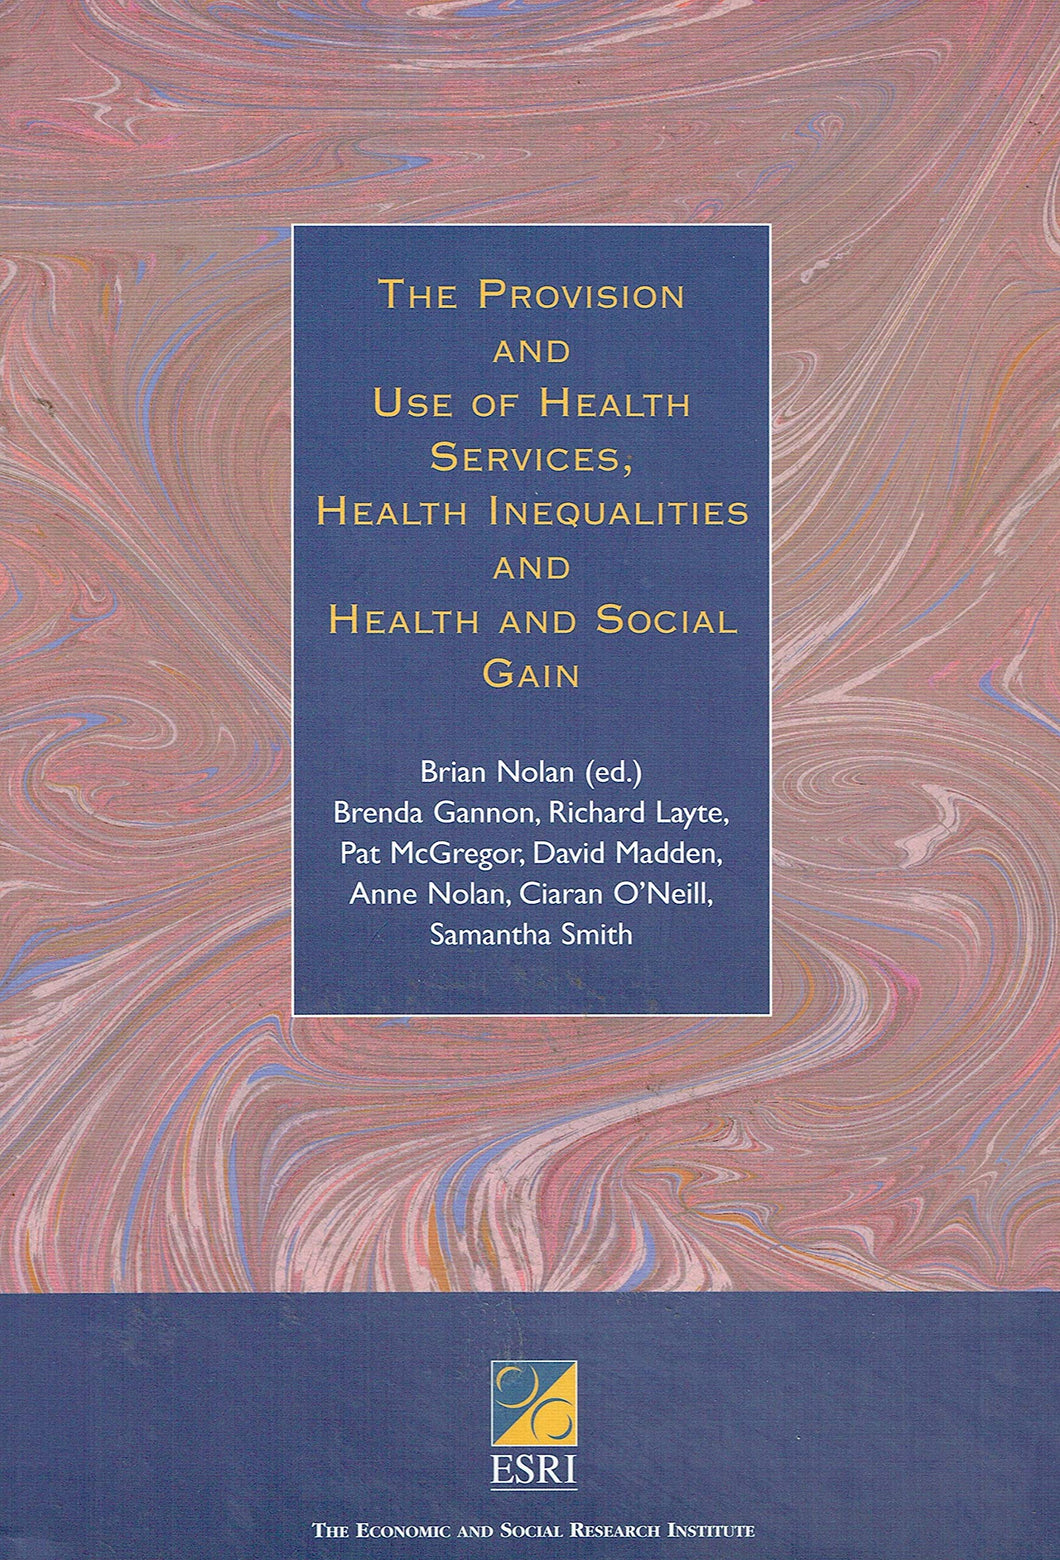 The Provision and Use of Health Services, Health Inequalities and Health and Social Gain (ESRI Books & Monographs)